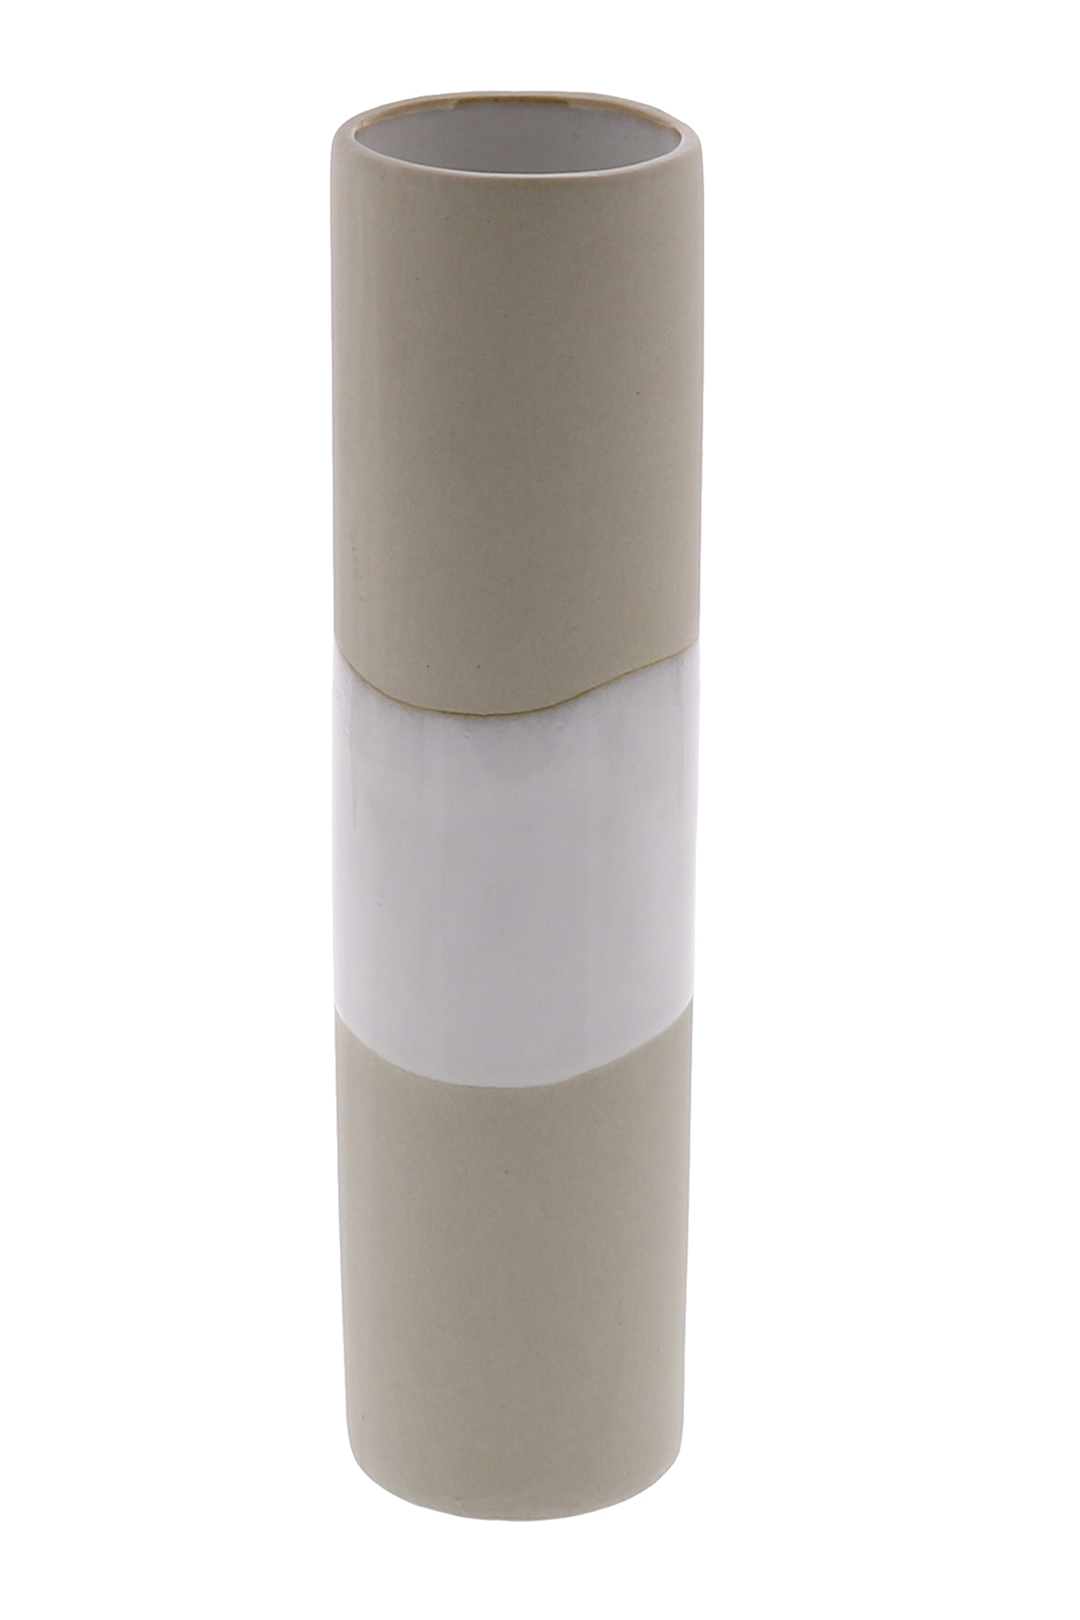 Shore Ceramic Cylinder Tall Vase